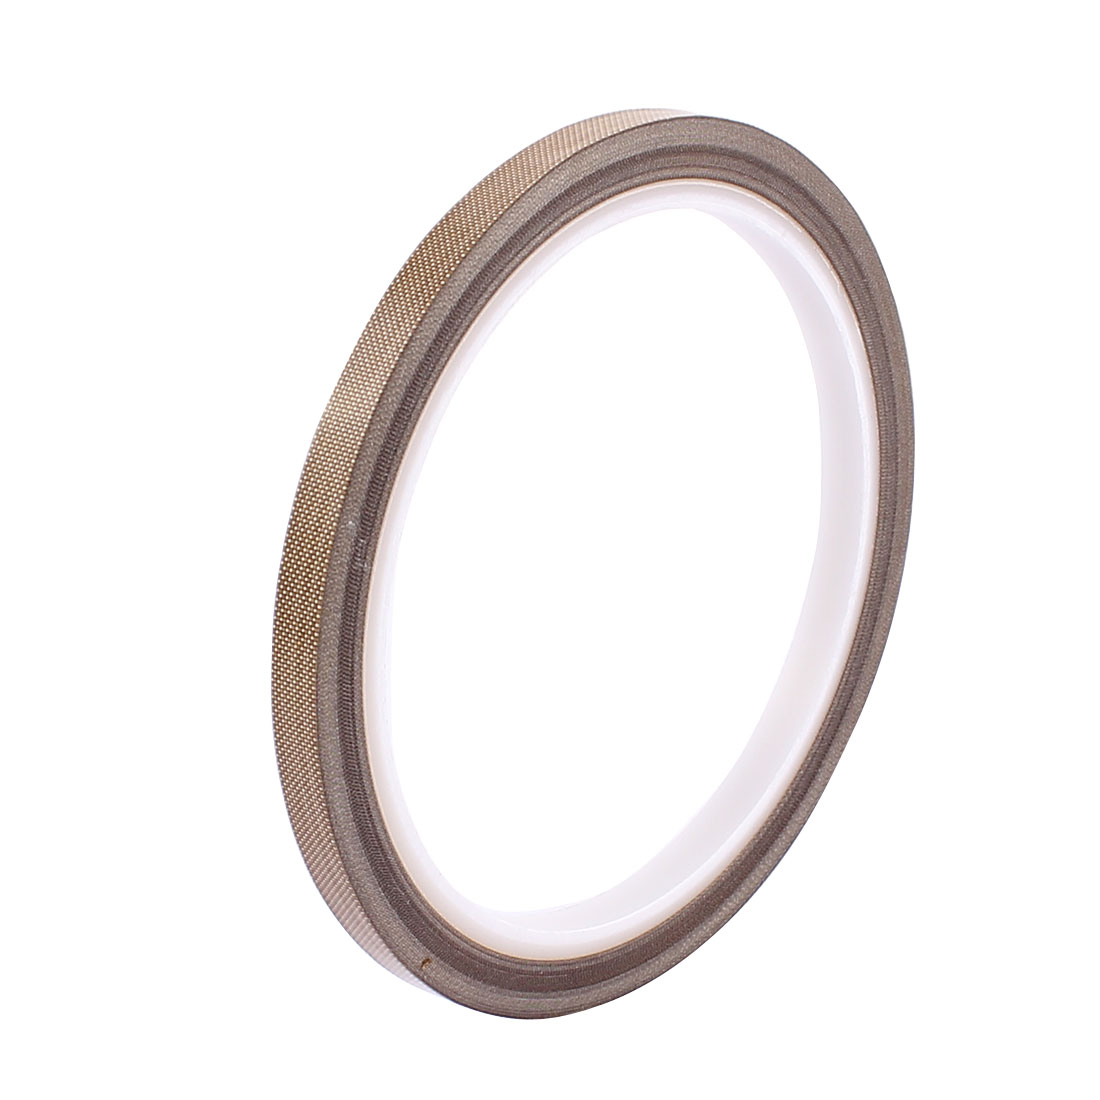 6mm Width 0.18mm Thickness 10M Long Nonstick High Temperature PTFE Adhesive Tape